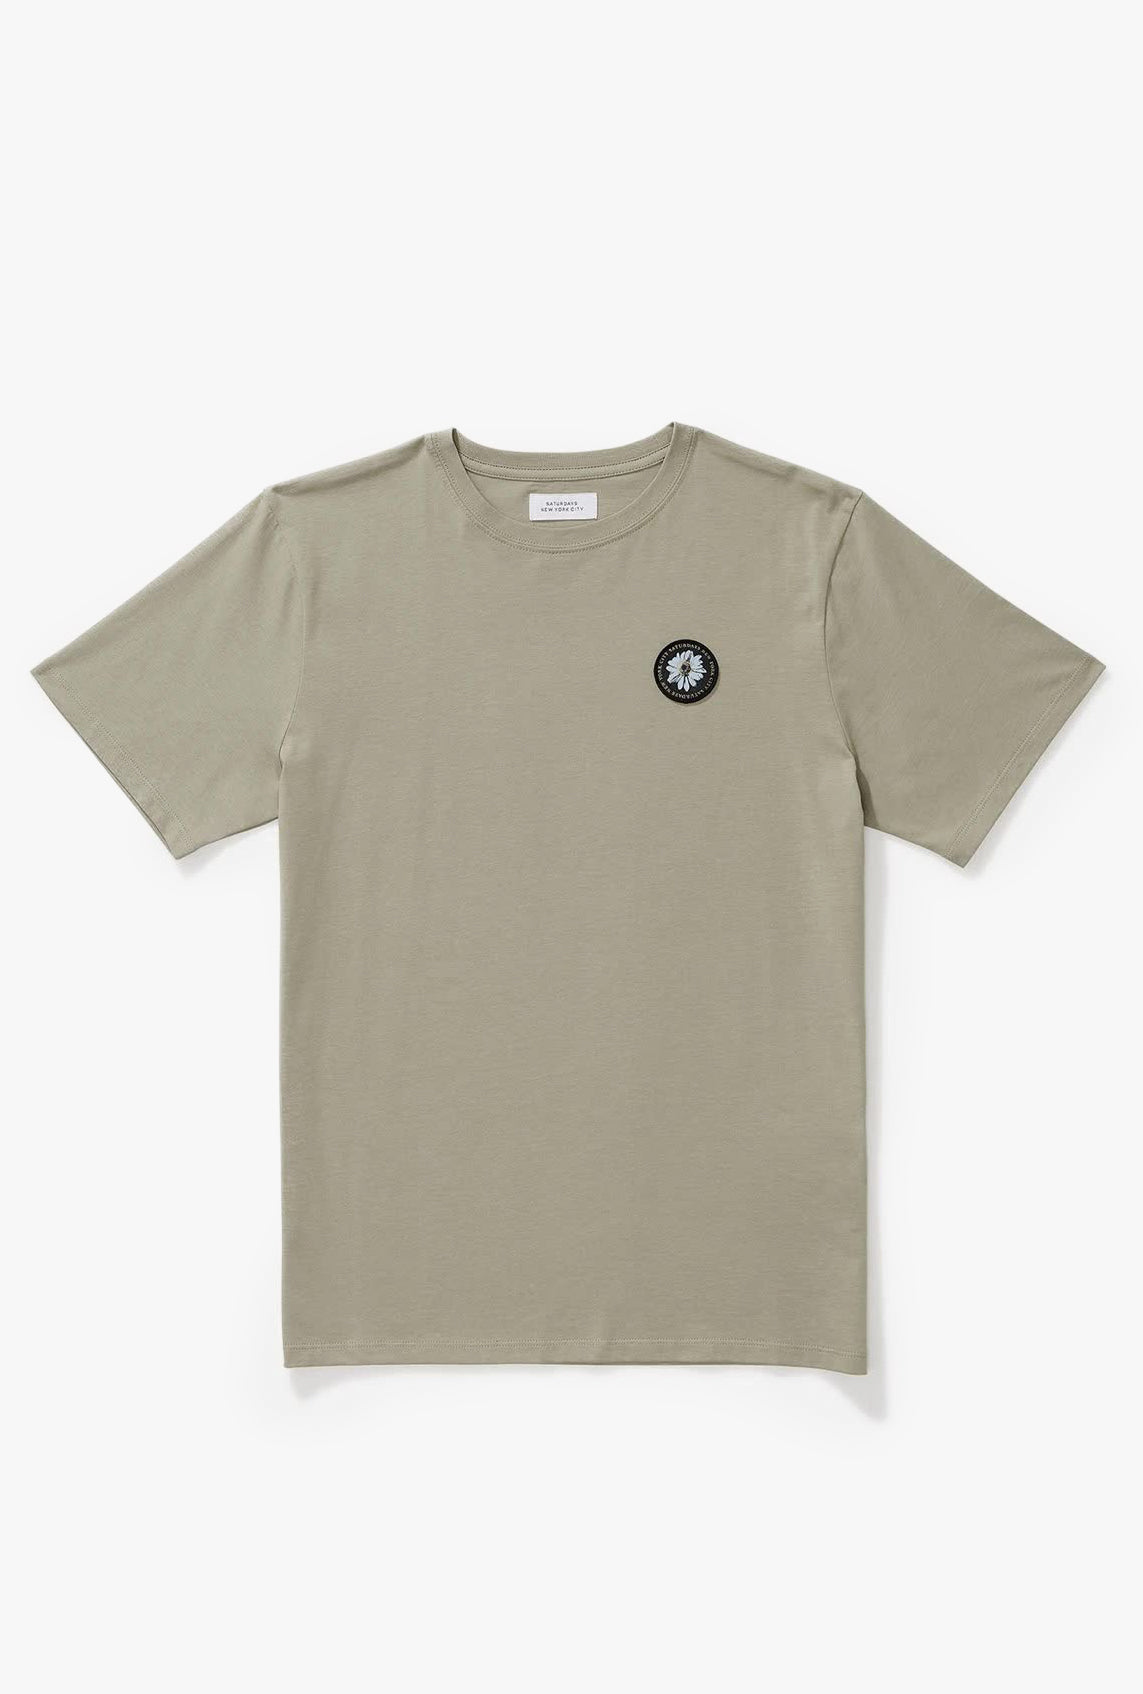 Daisy Patch S/S Tee